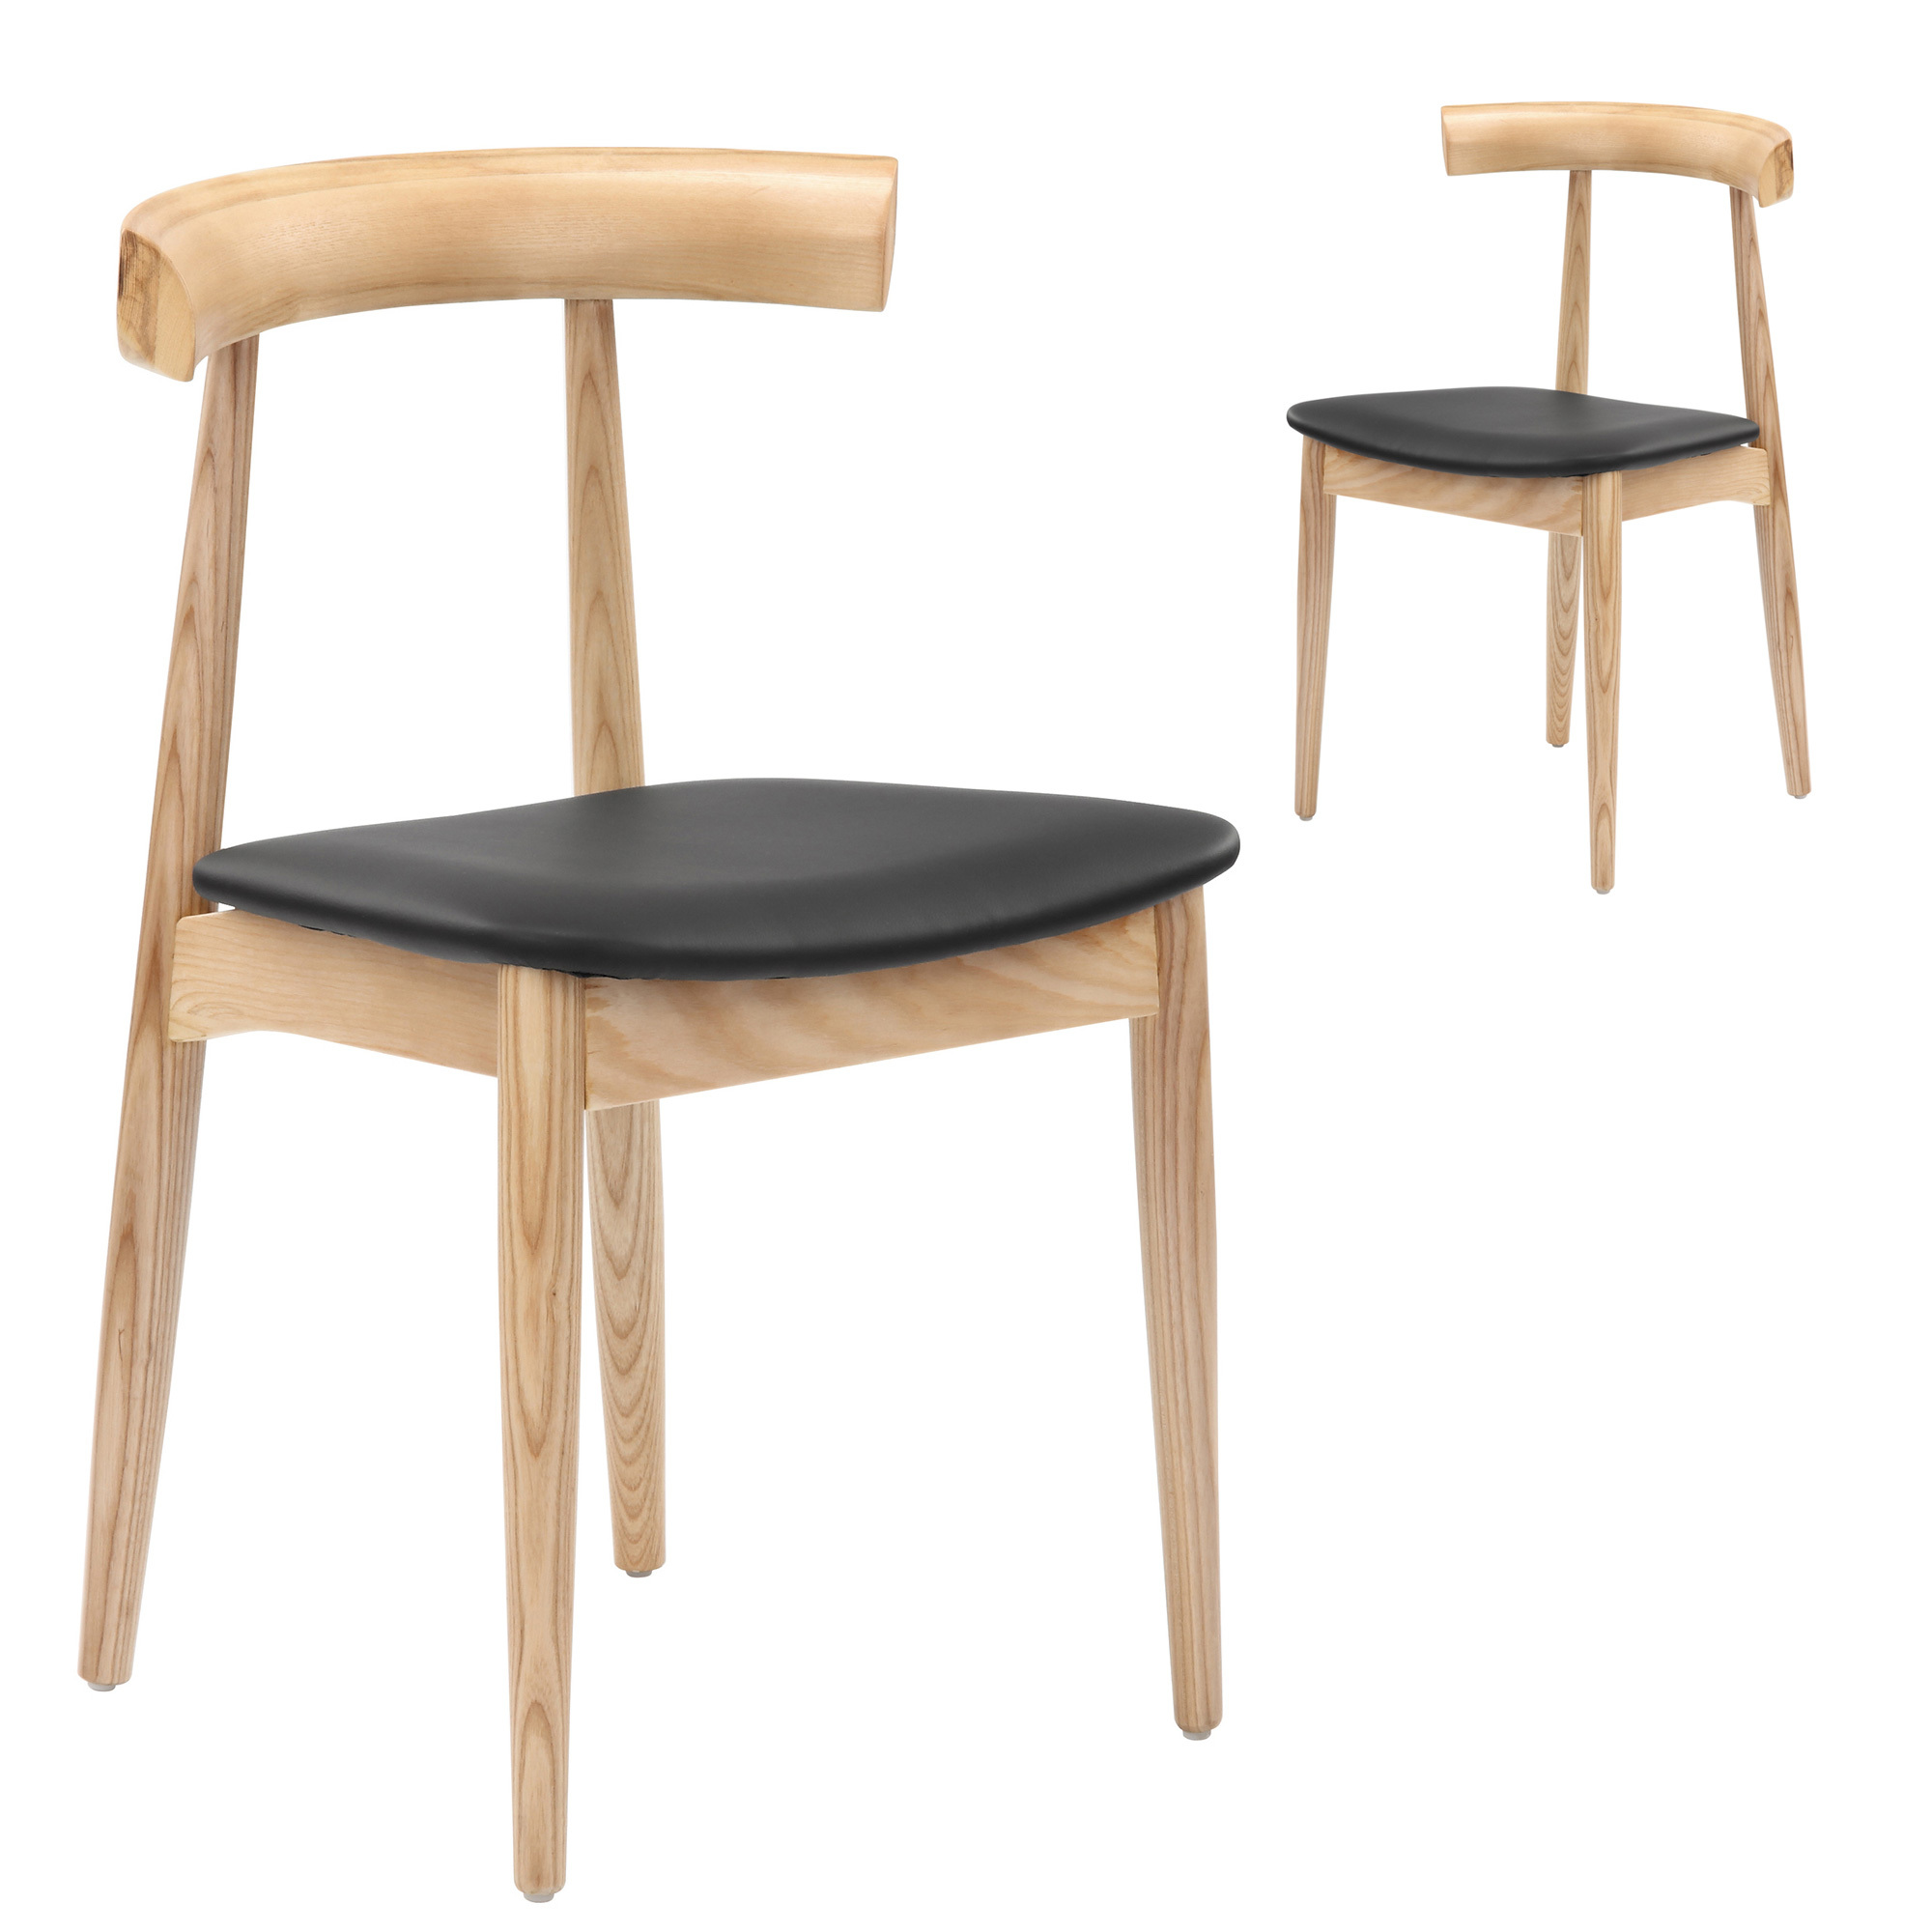 sports shoes bd394 f537b Scandi Ash Dining Chairs with PU Seats (Set of 2)